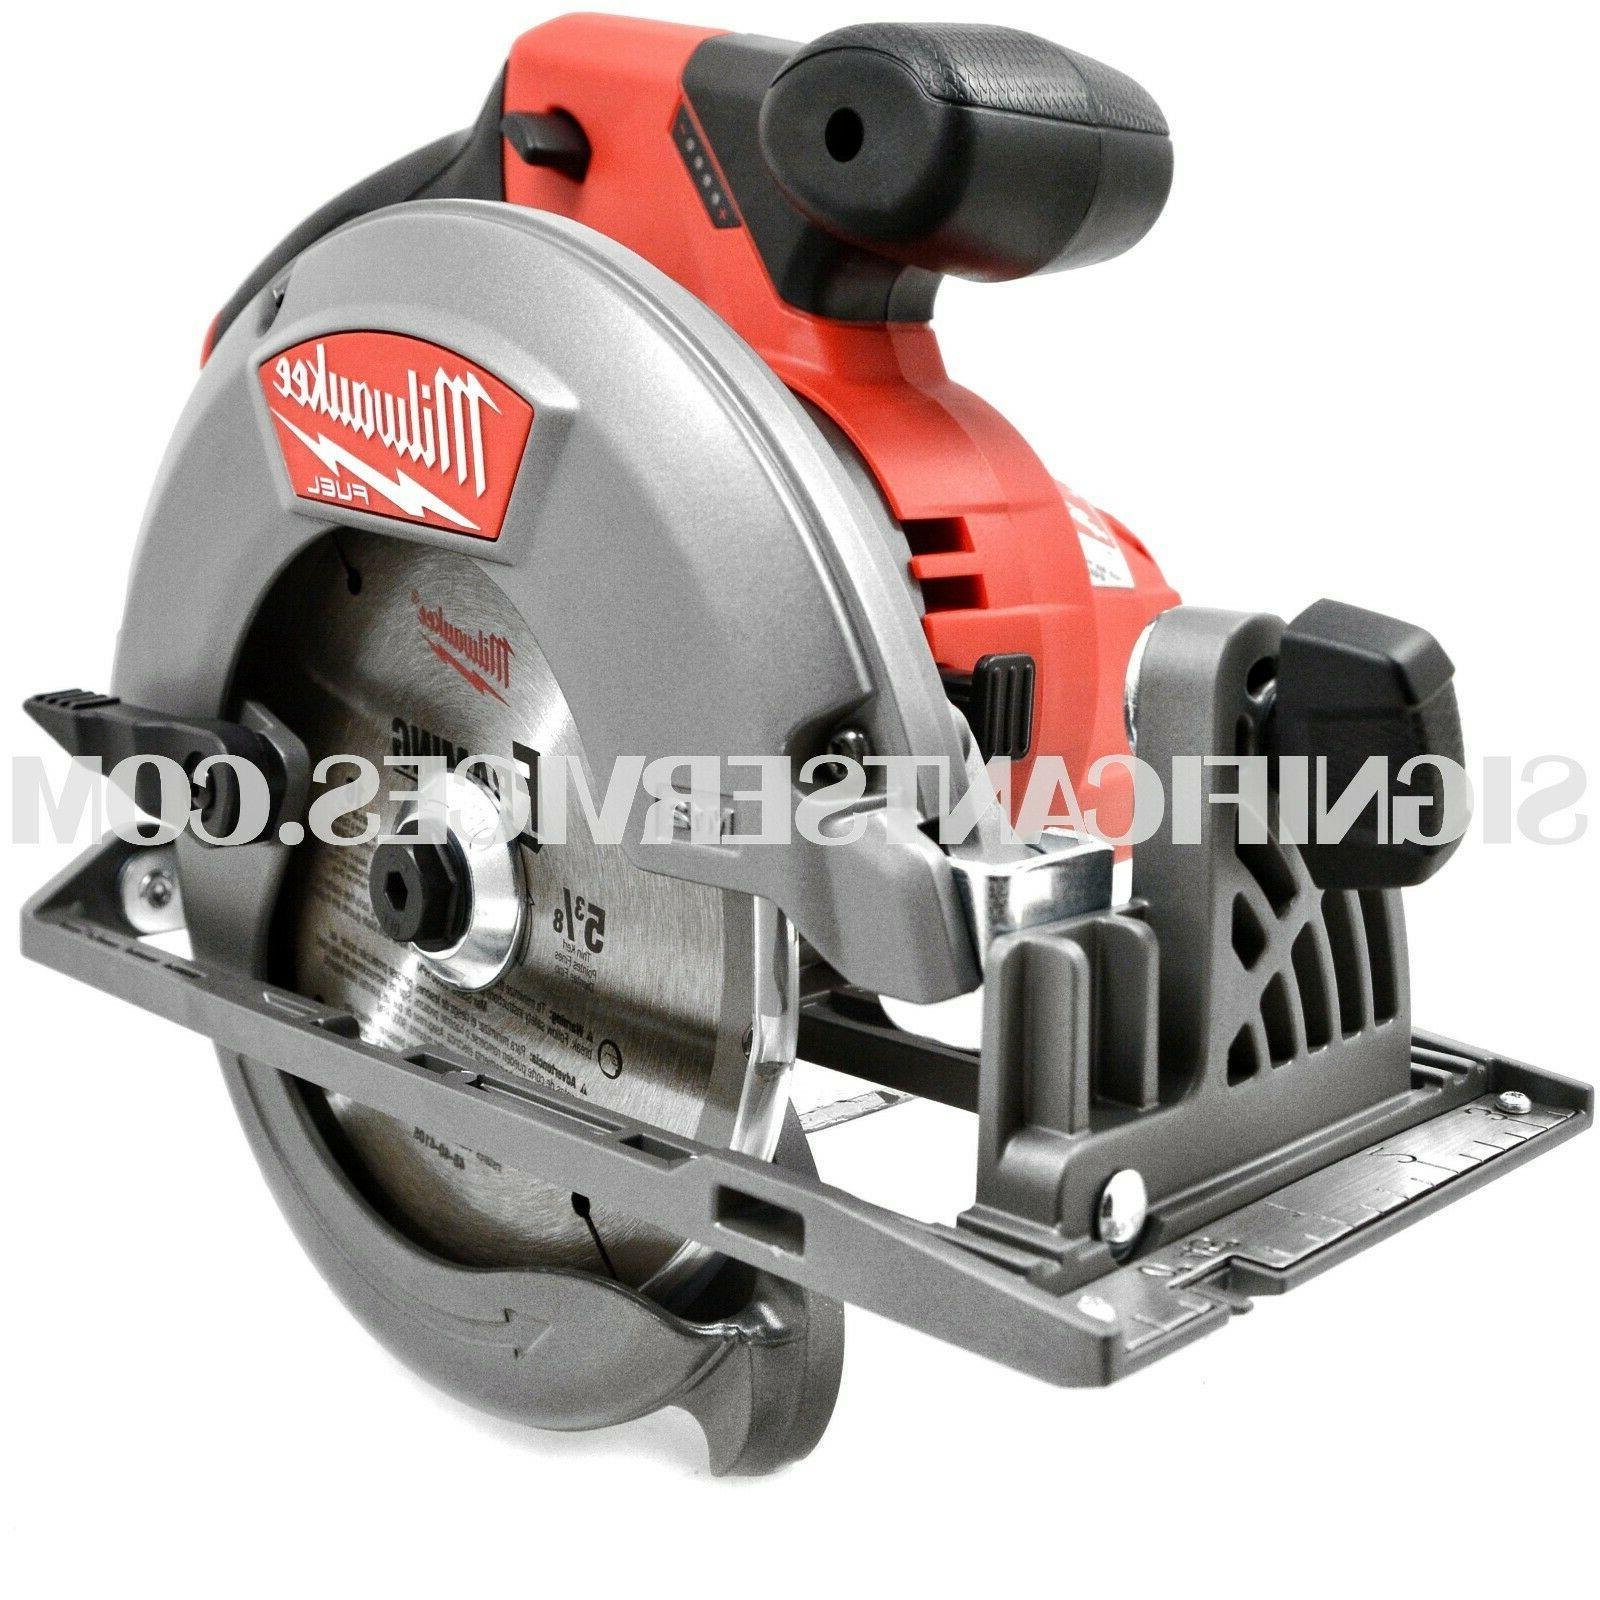 "Milwaukee M12 5-3/8"" Li-Ion Blade"